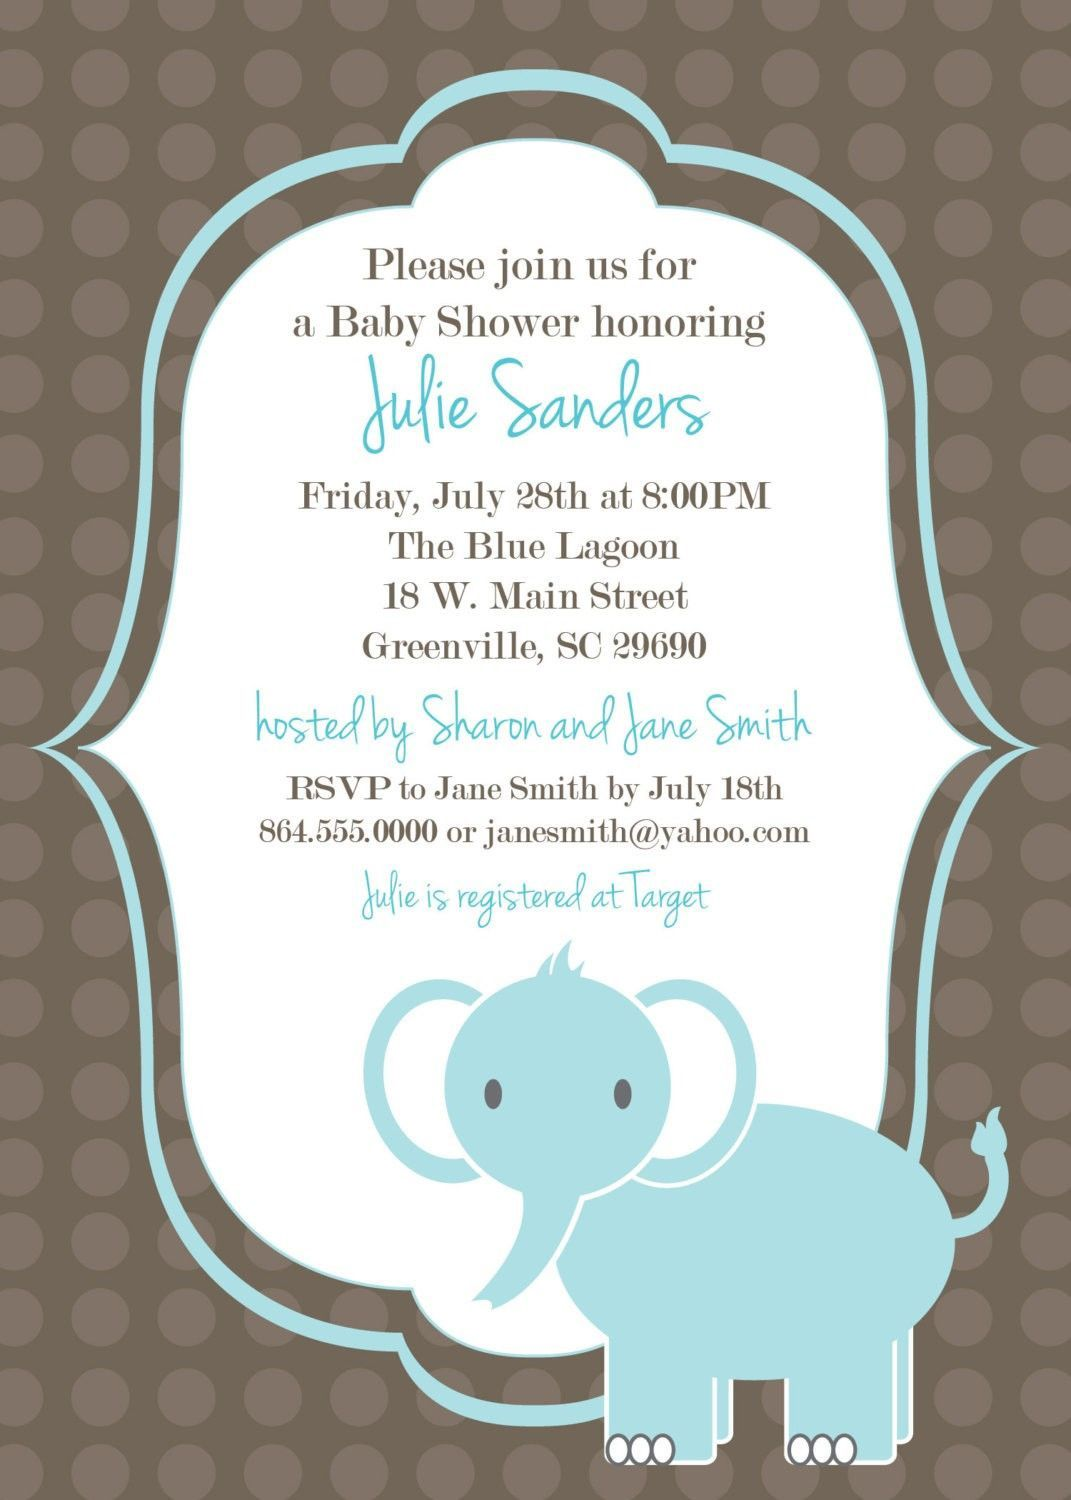 006 Unusual Free Baby Shower Invitation Template For Boy High Def Full